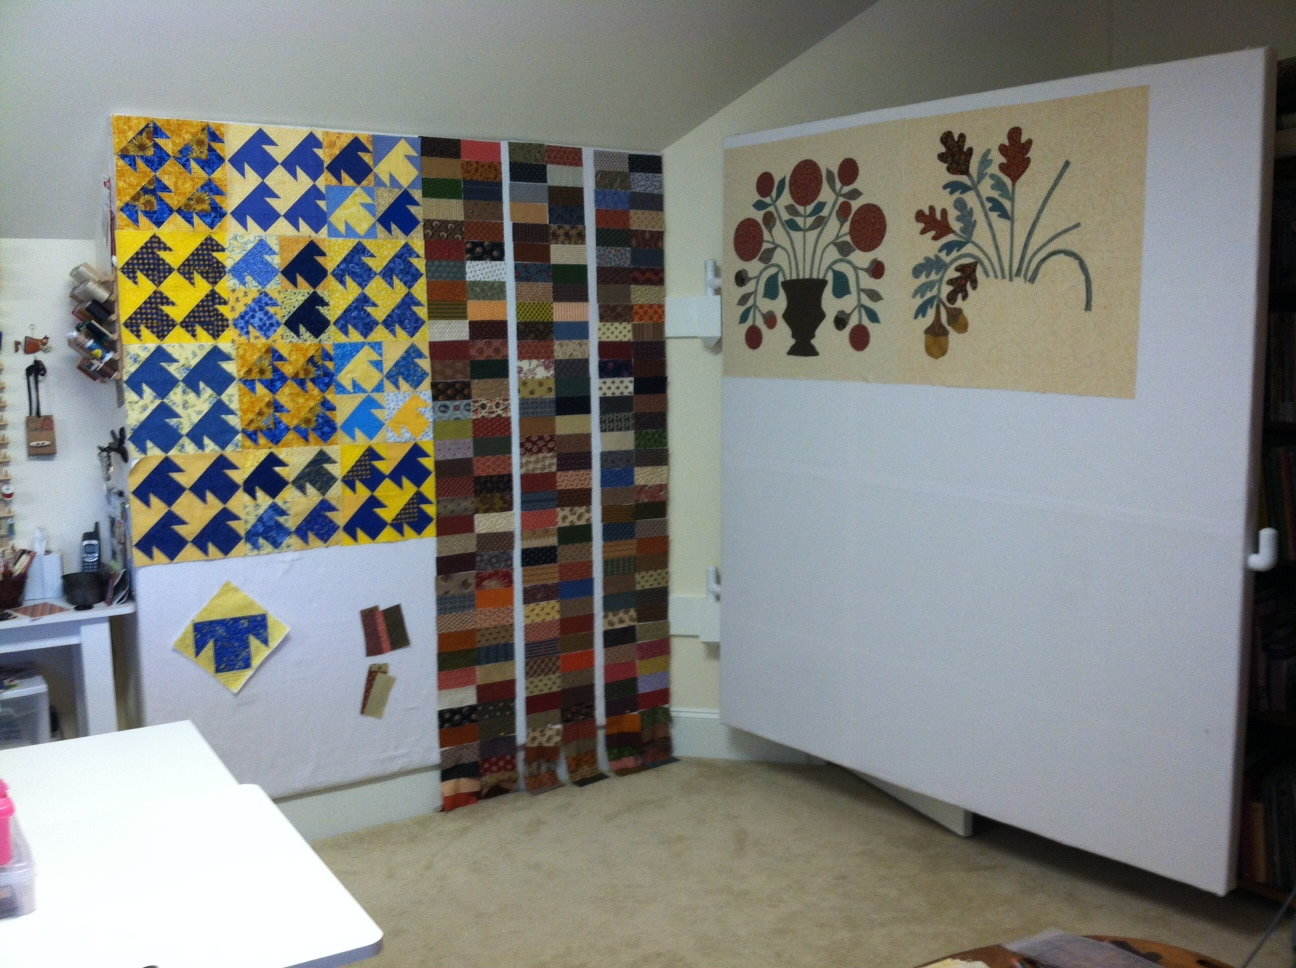 Design Wall For Quilting grammy quilts: an awesome hinged design wall mademy awesome